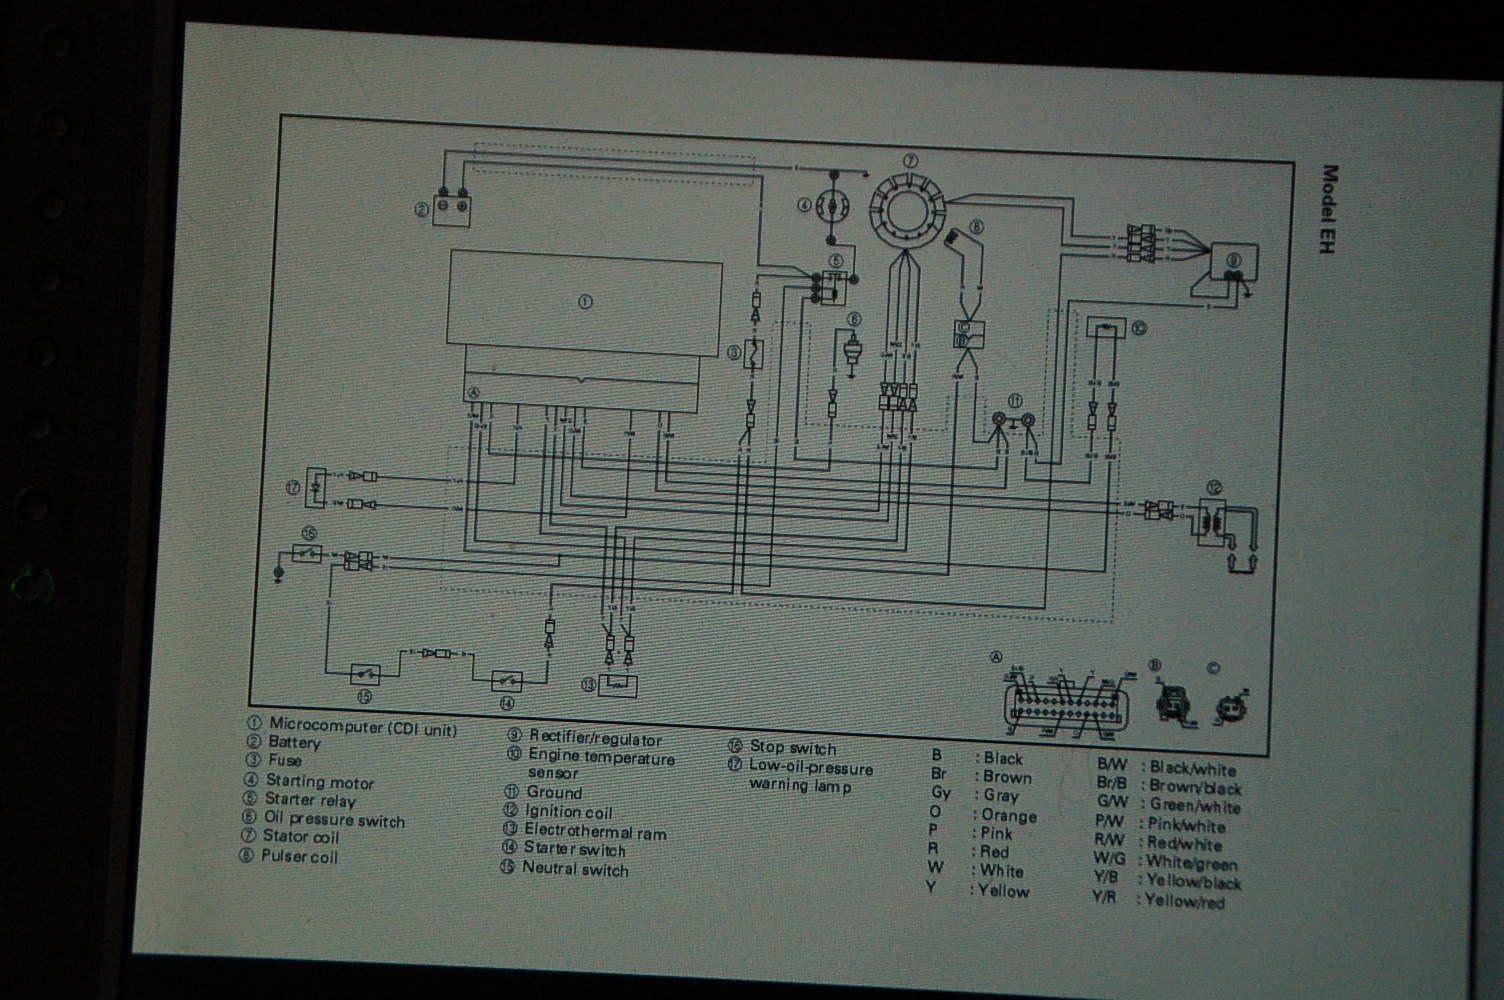 Omc Cobra Engine Wiring Diagram On Car Wiring Diagrams For Dummies